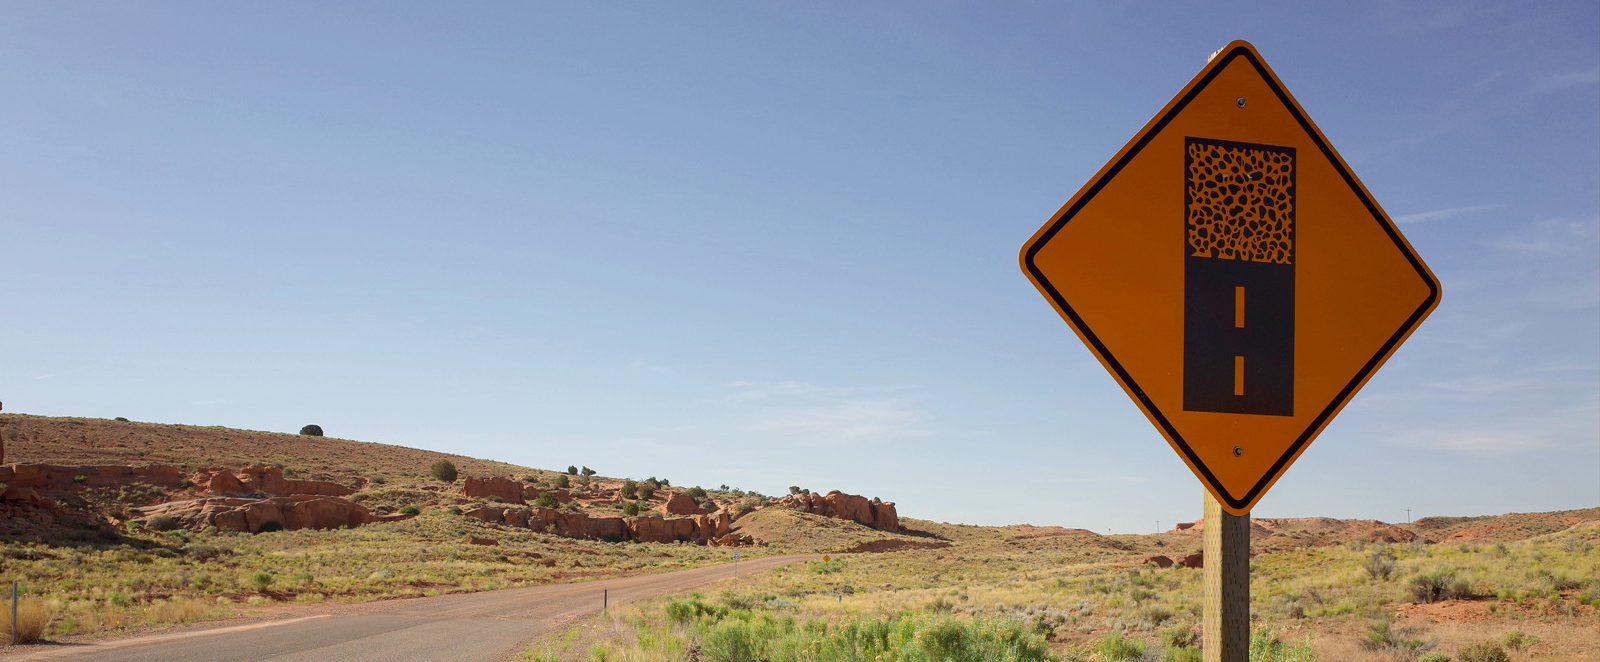 Dirt-Road-Sign-Capitol-Reef-National-Park-Utah Utah Dust Control